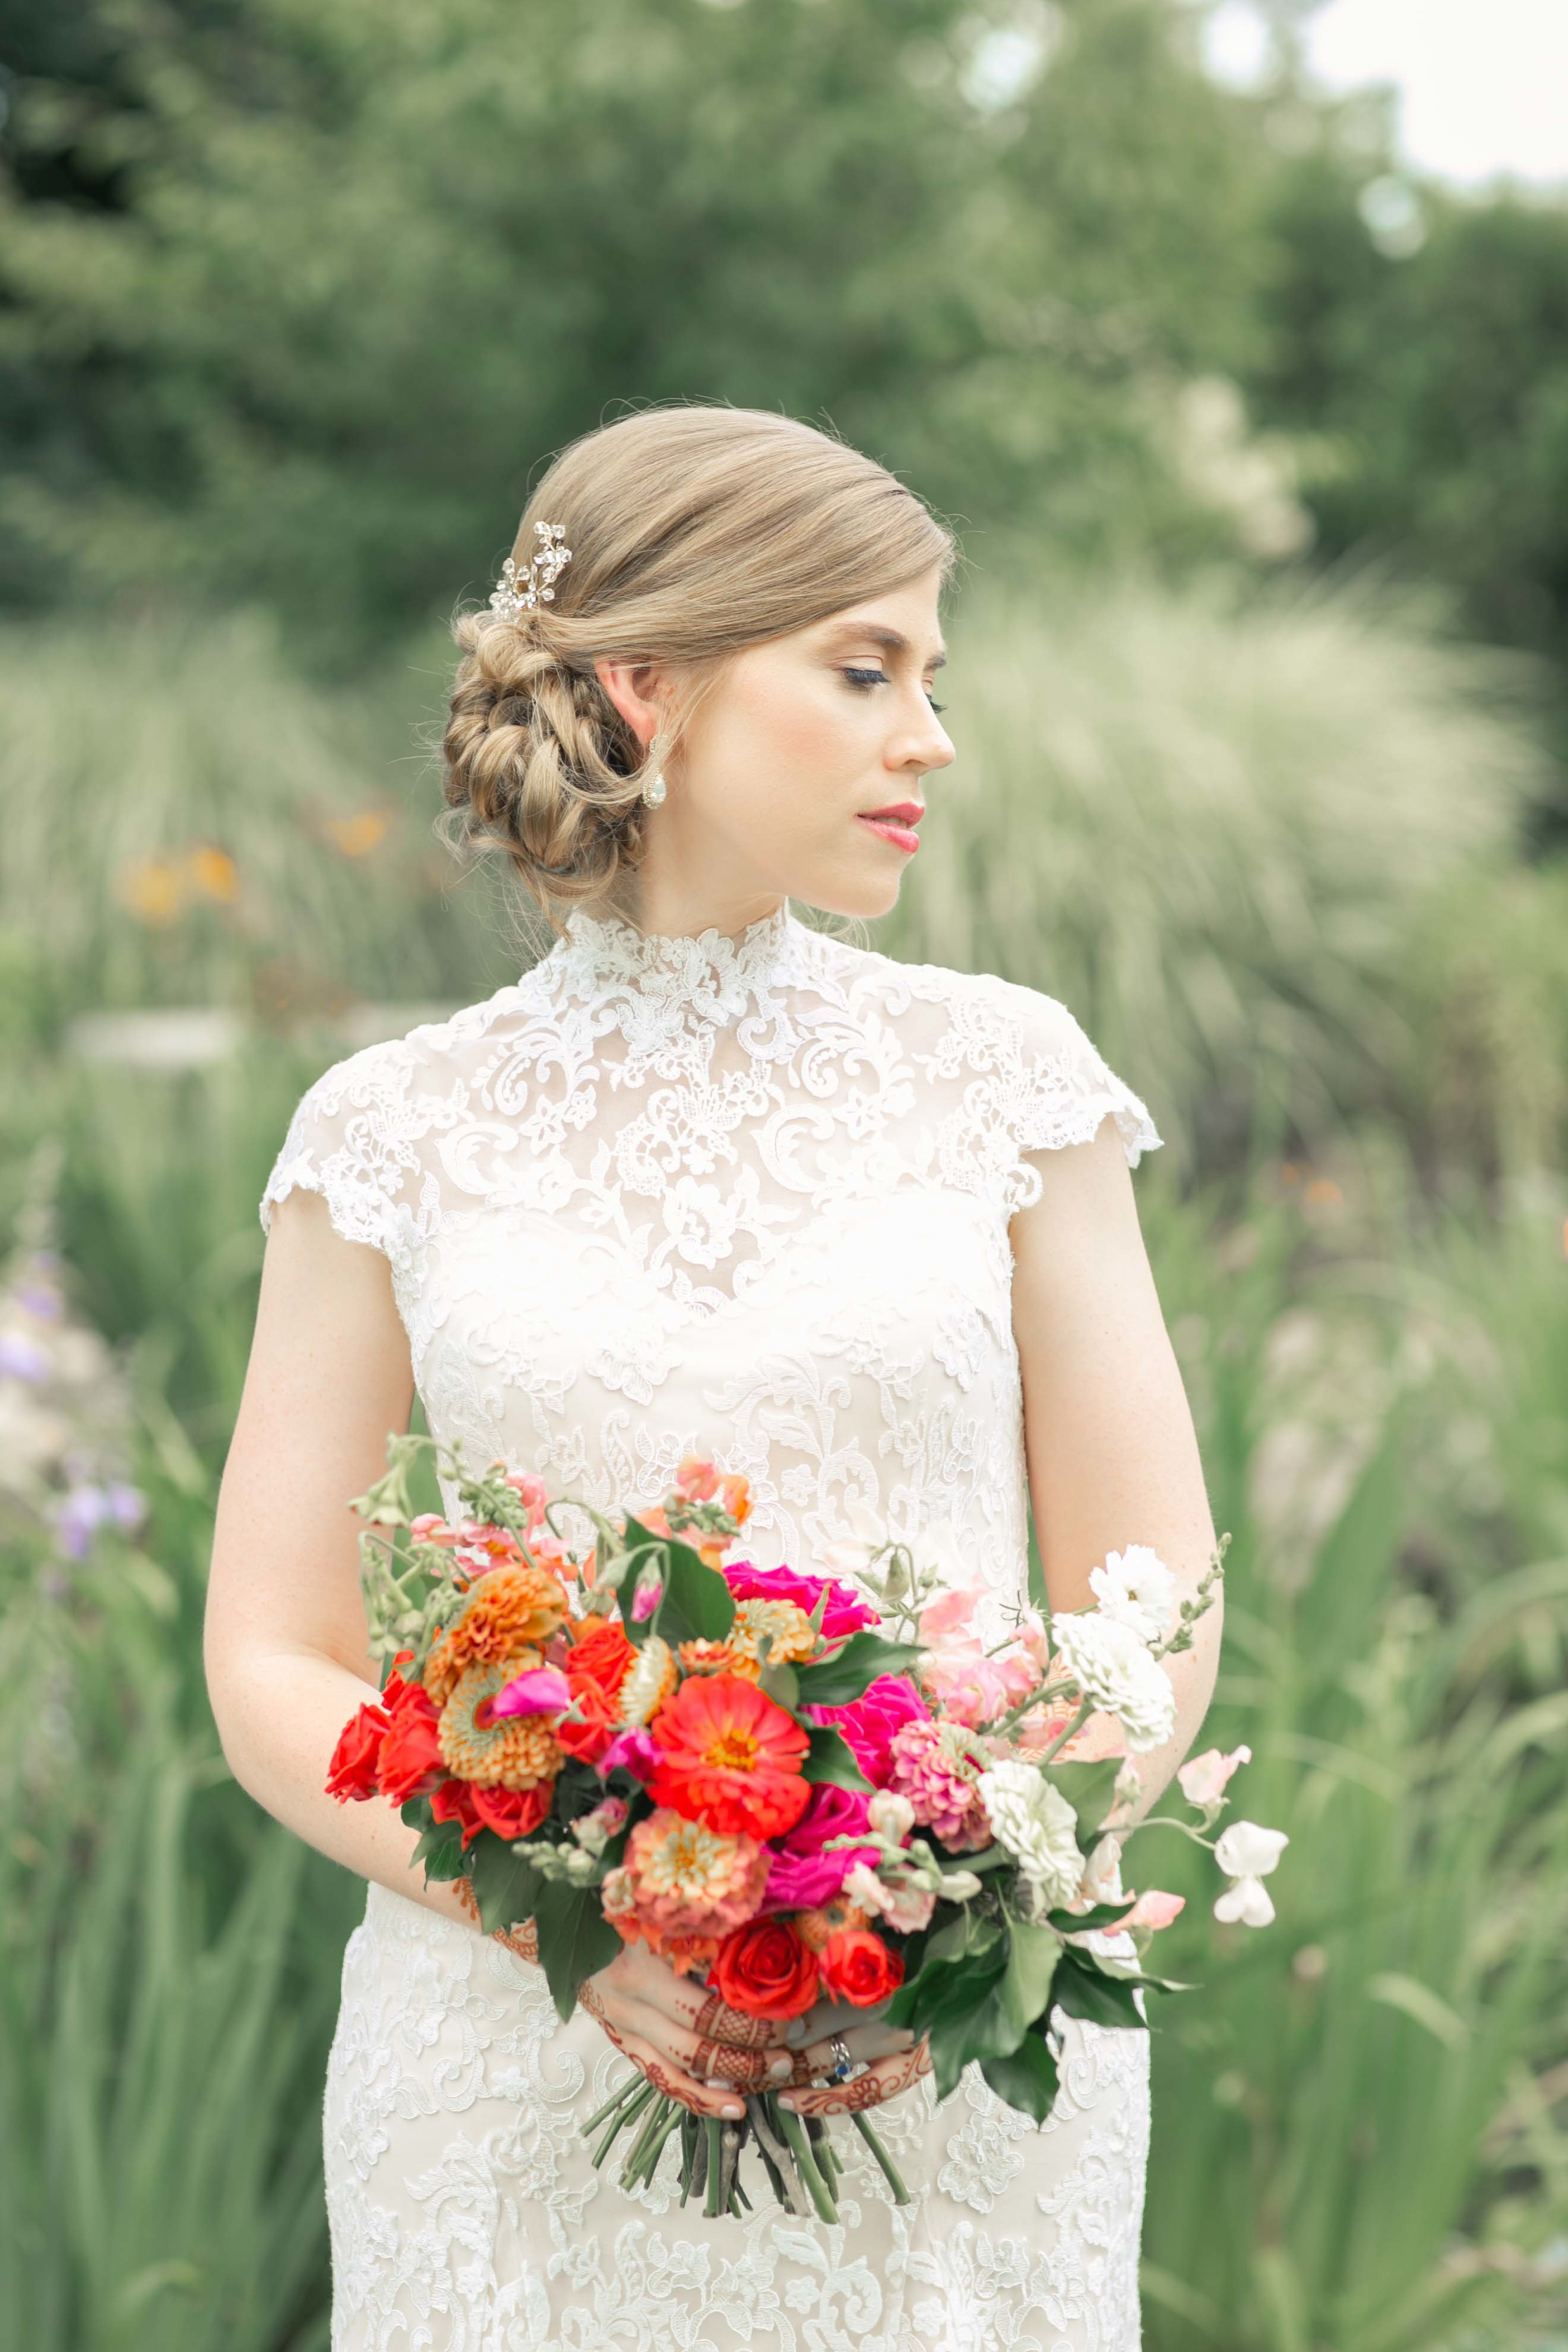 Anomalie bride wearing a short-sleeved, high collar gown.